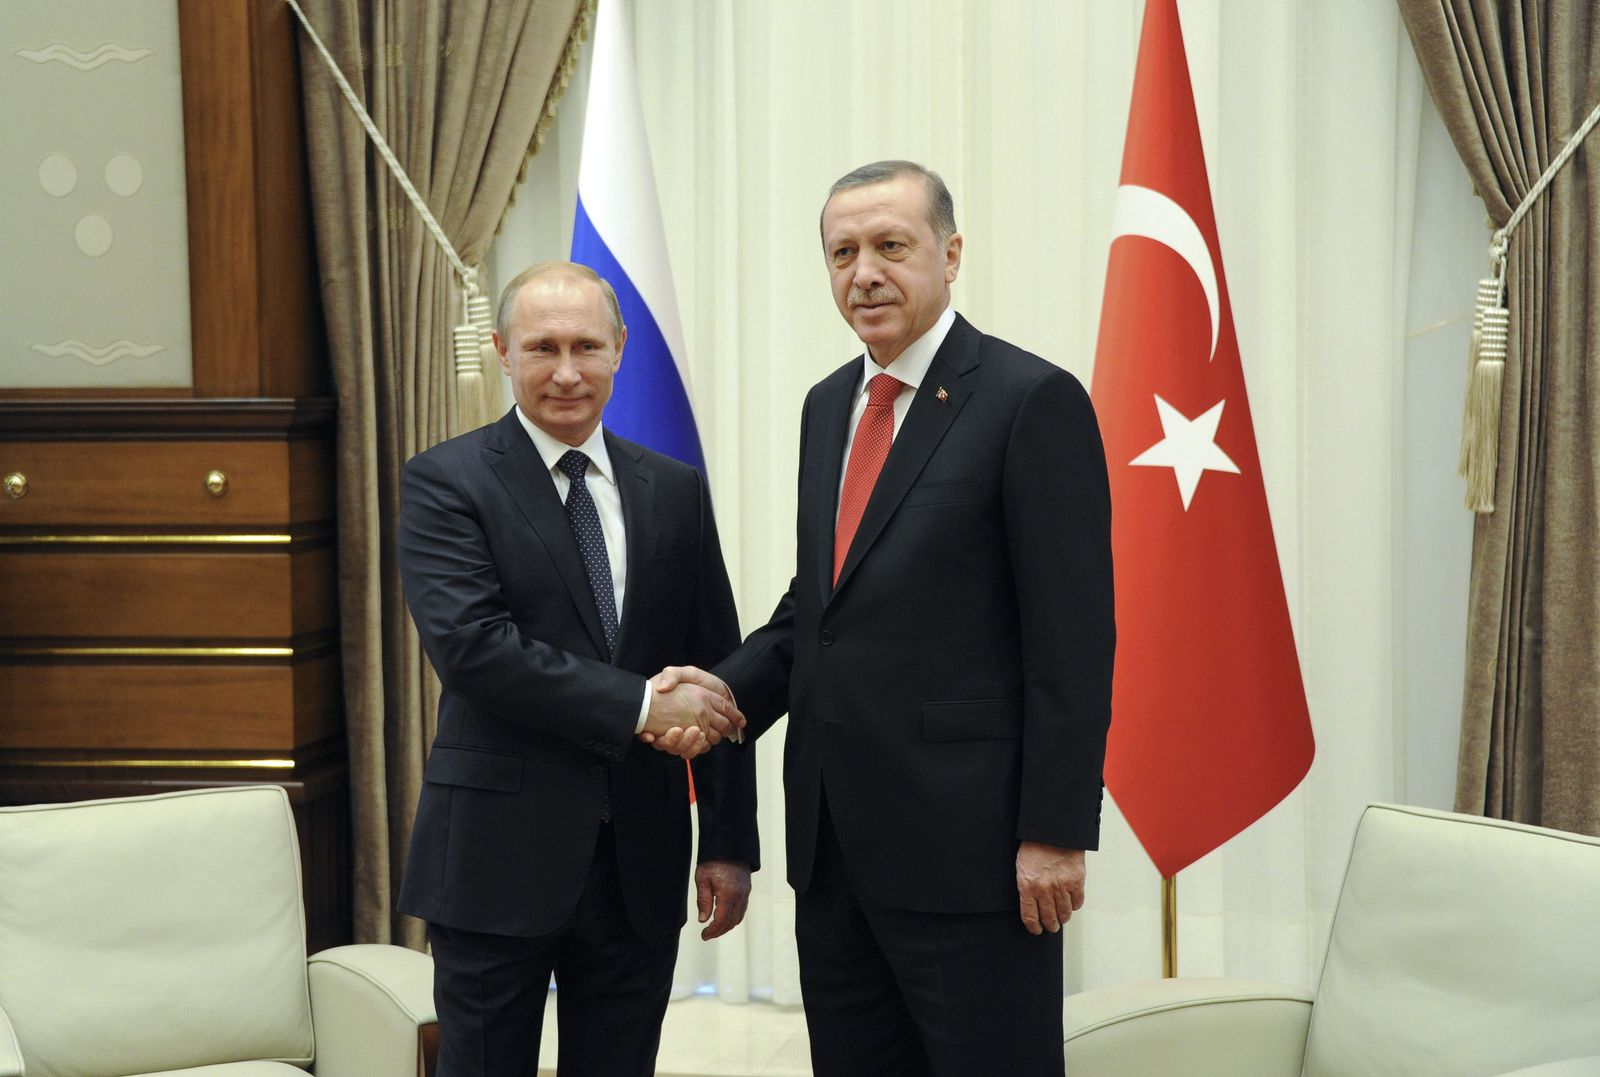 Russia's President Vladimir Putin shakes hands with his Turkish counterpart Tayyip Erdogan during a meeting at the Presidential Palace in Ankara